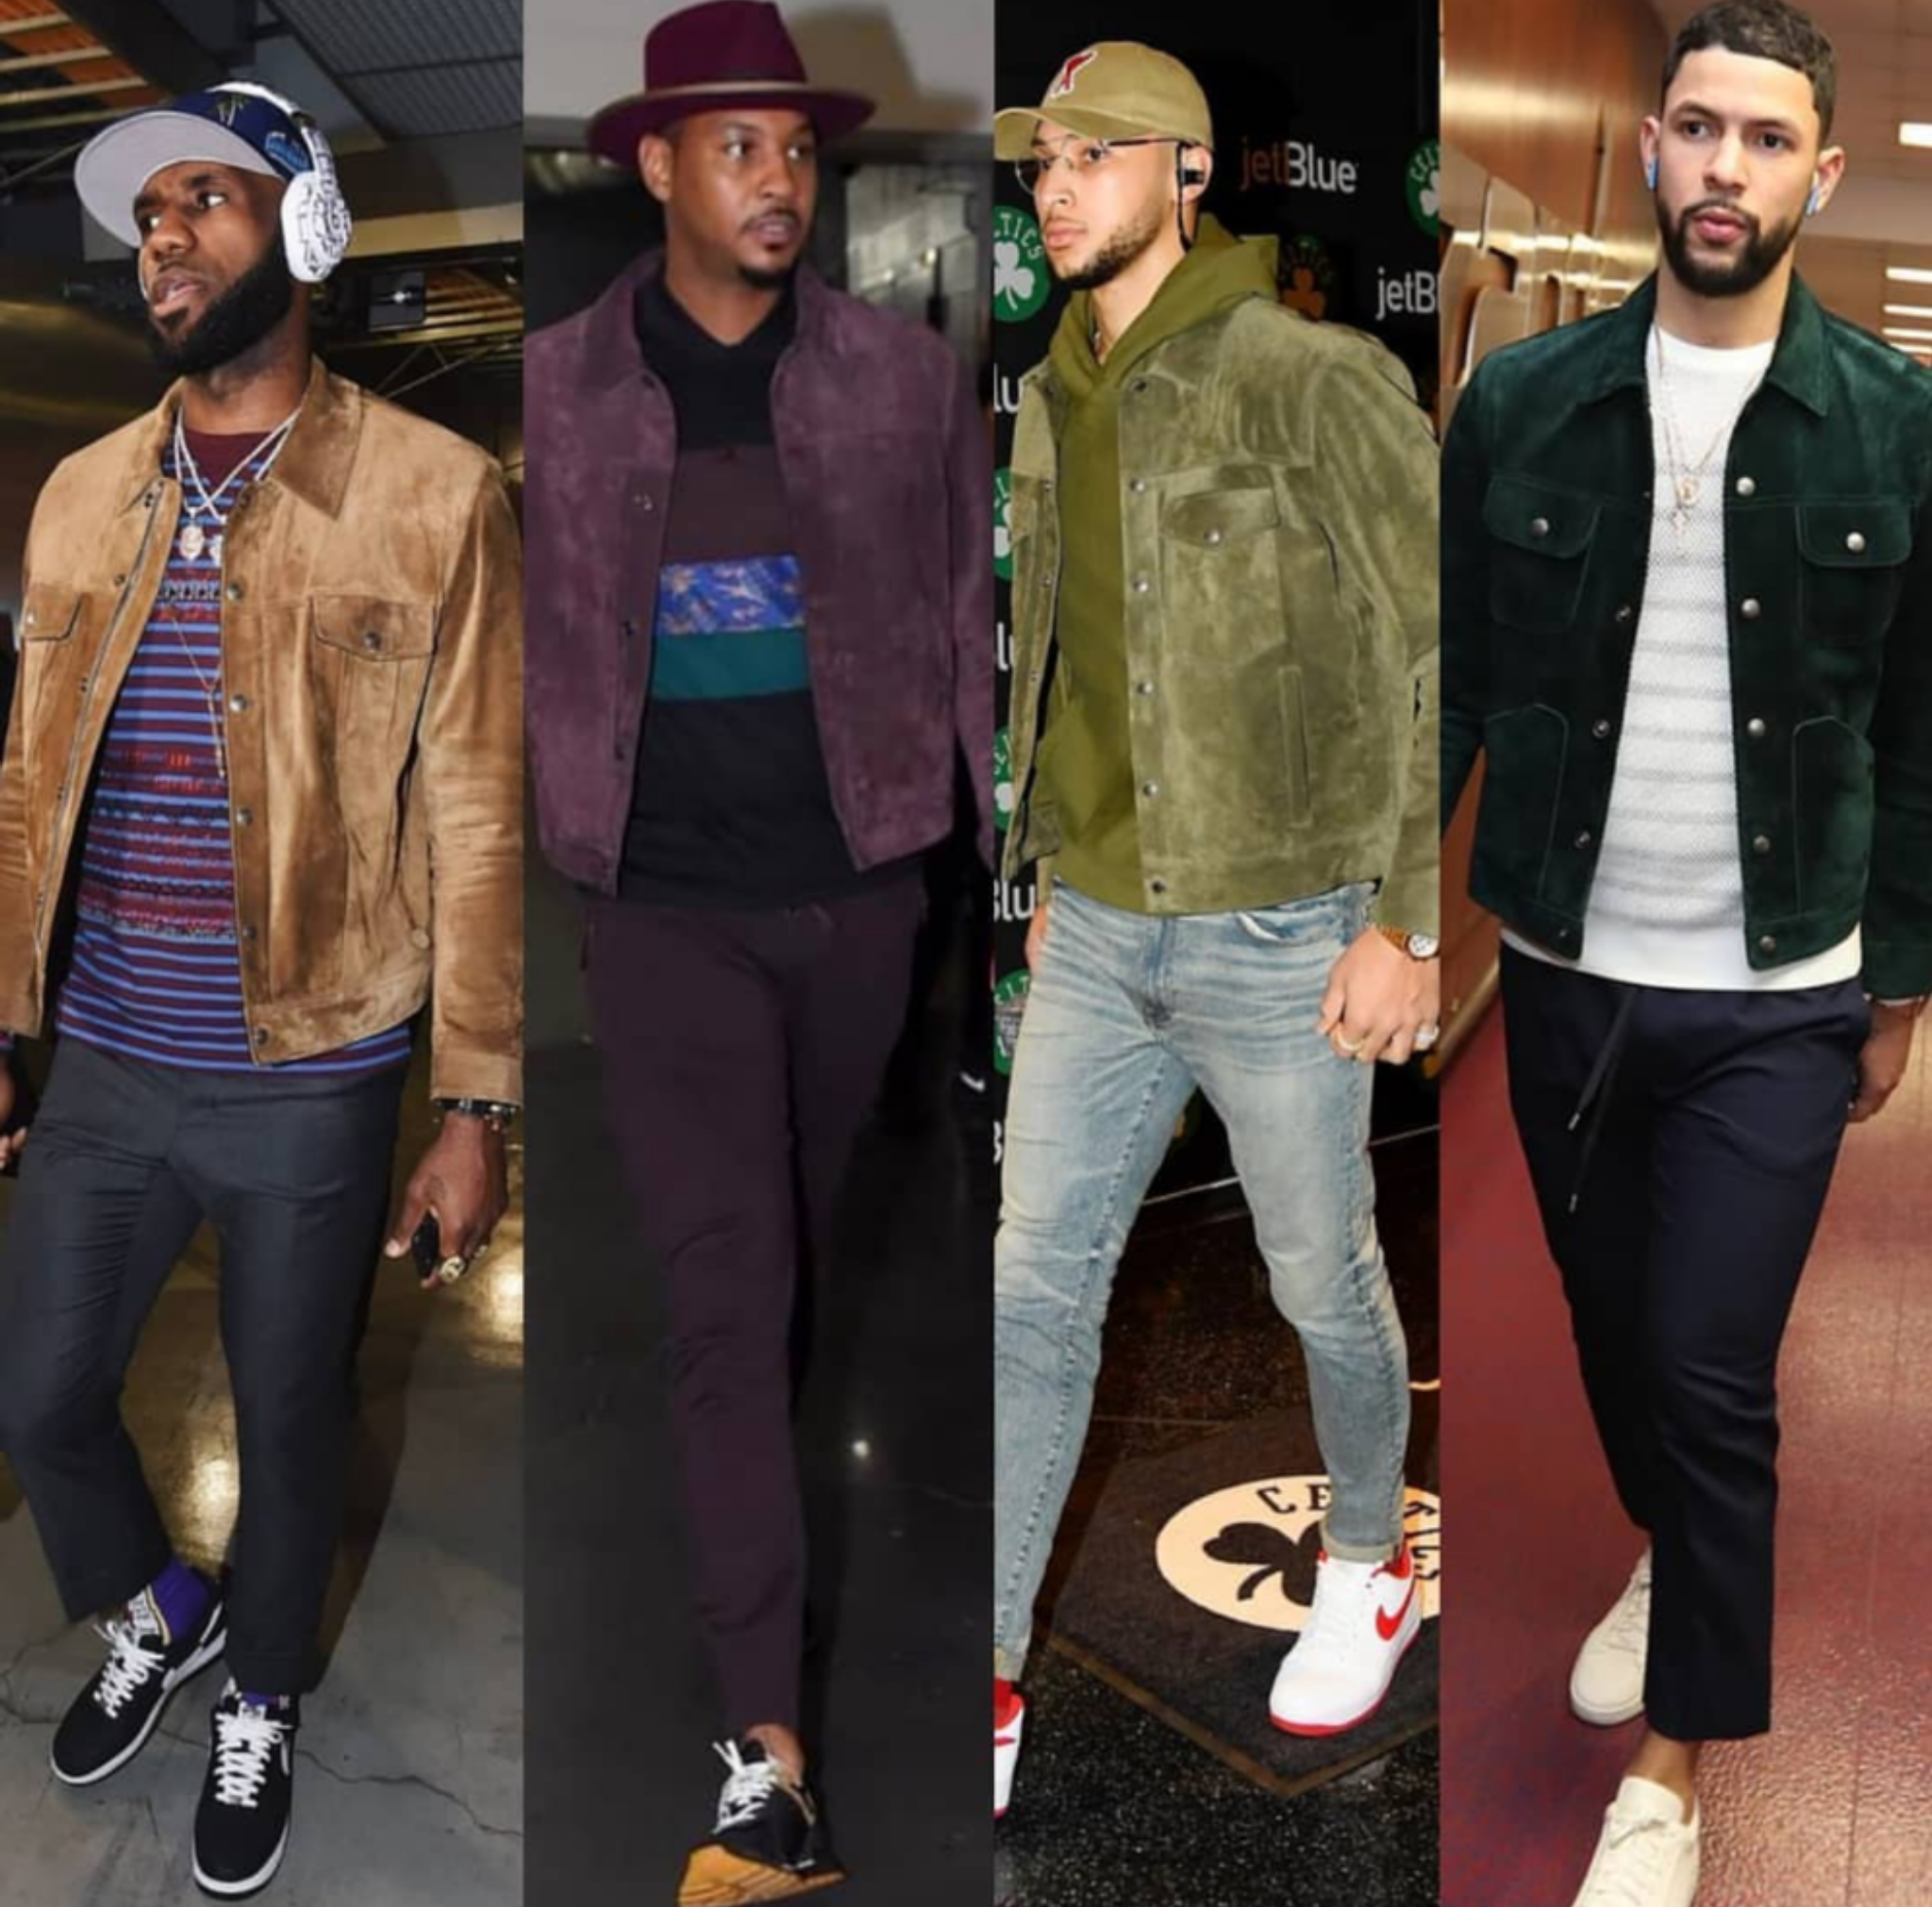 Suede Jacket, A Must Have: Thanks To Lebron James, Carmelo Anthony, Ben Simmons And Austin Rivers